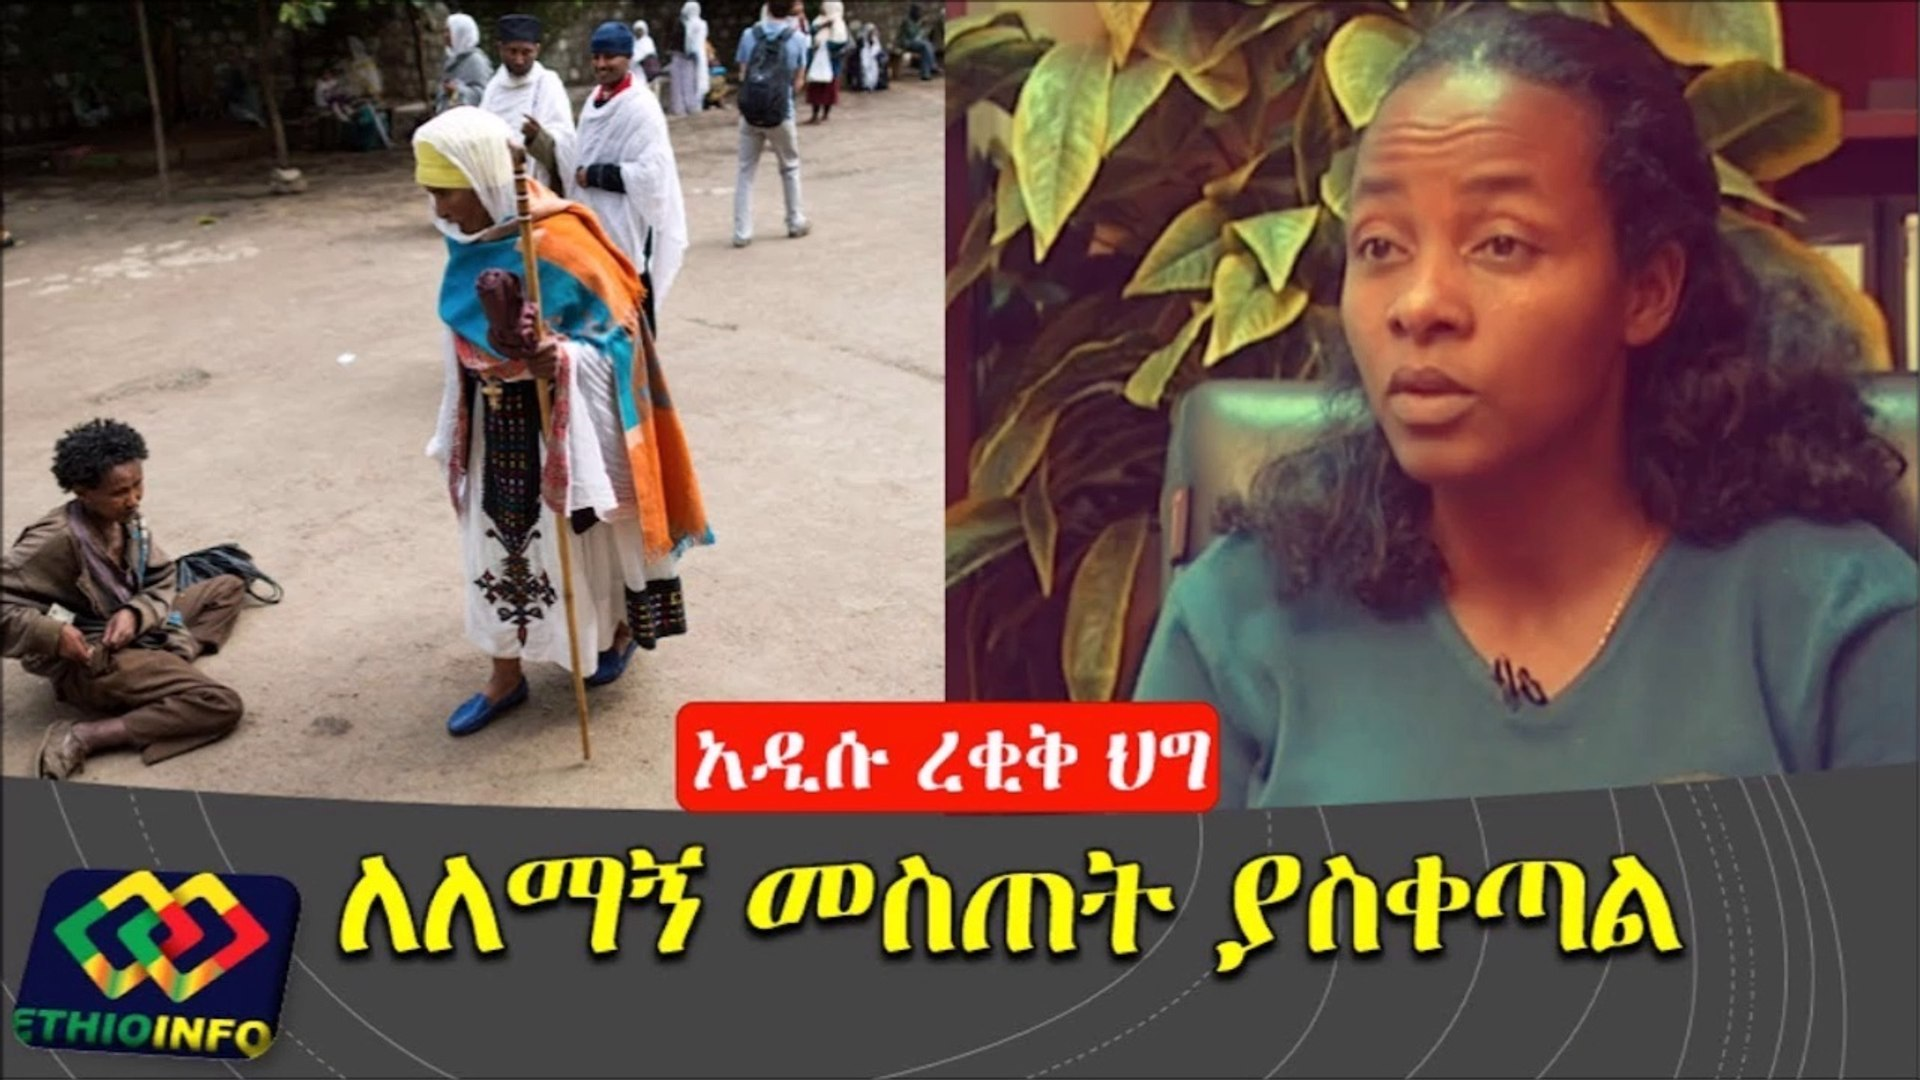 Addis Ababa administration proposes a bill to ban individuals from giving money to beggars